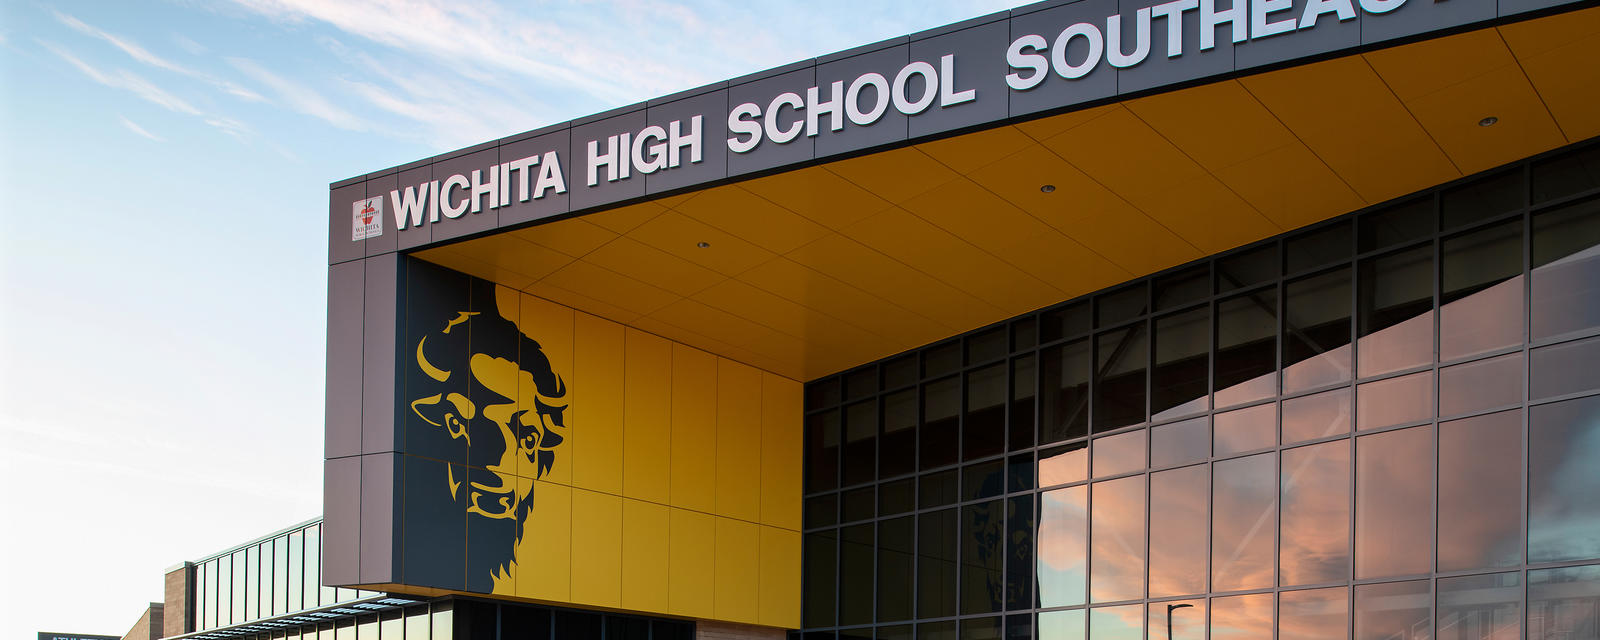 Wichita High School, Wichita, Kansas